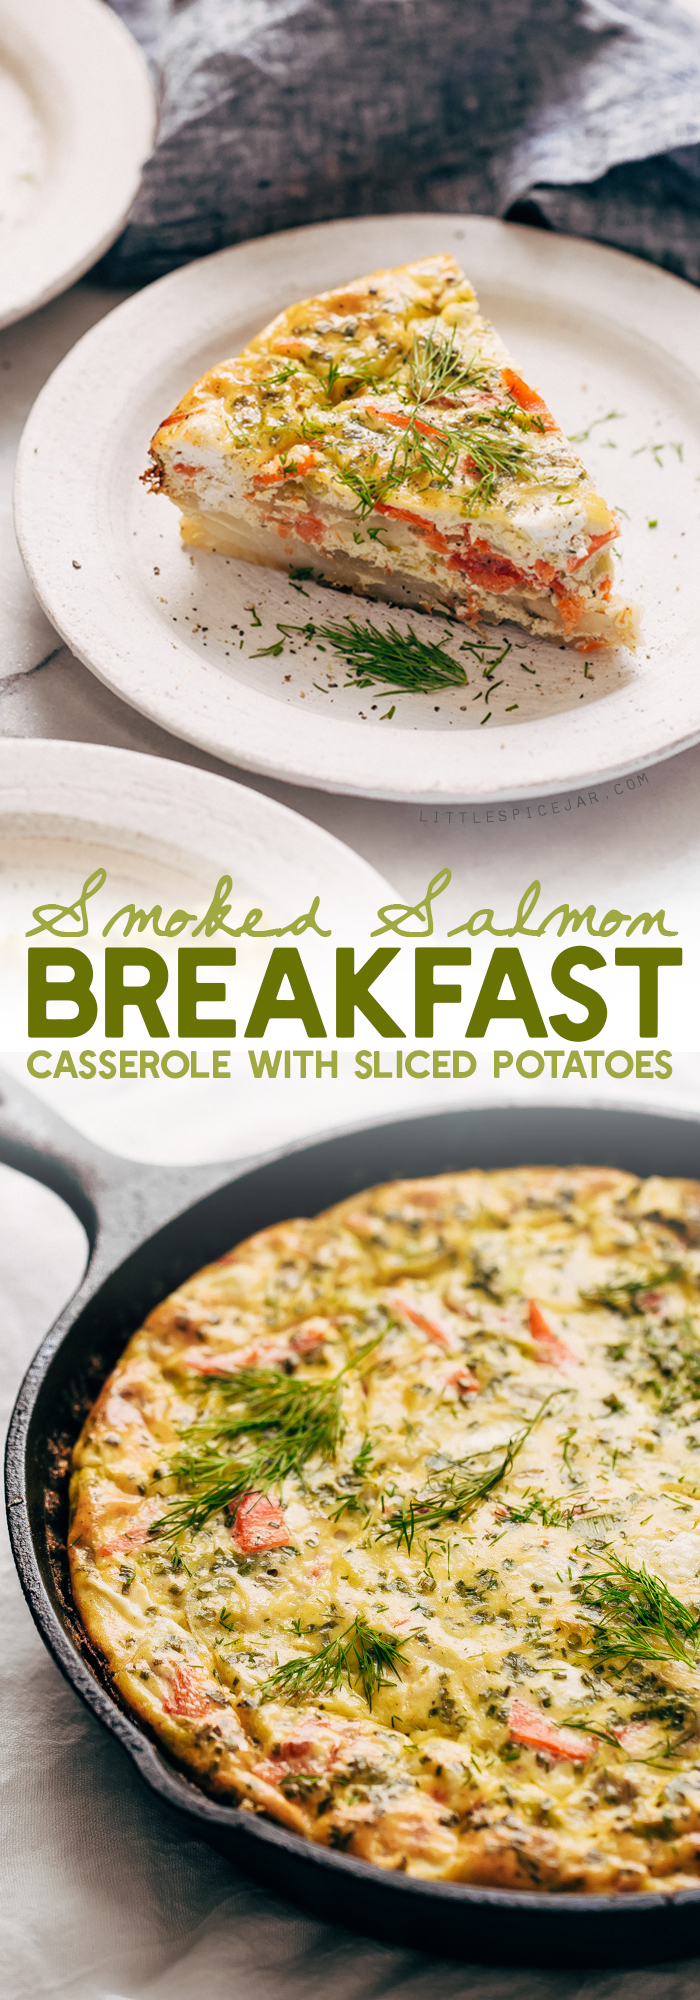 Smoked Salmon Breakfast Casserole - layers of thinly sliced potatoes, sautéed leeks, and flaky salmon. Great to serve for brunch! casserole #breakfastcasserole #smokedsalmon #salmoncasserole | Littlespicejar.com